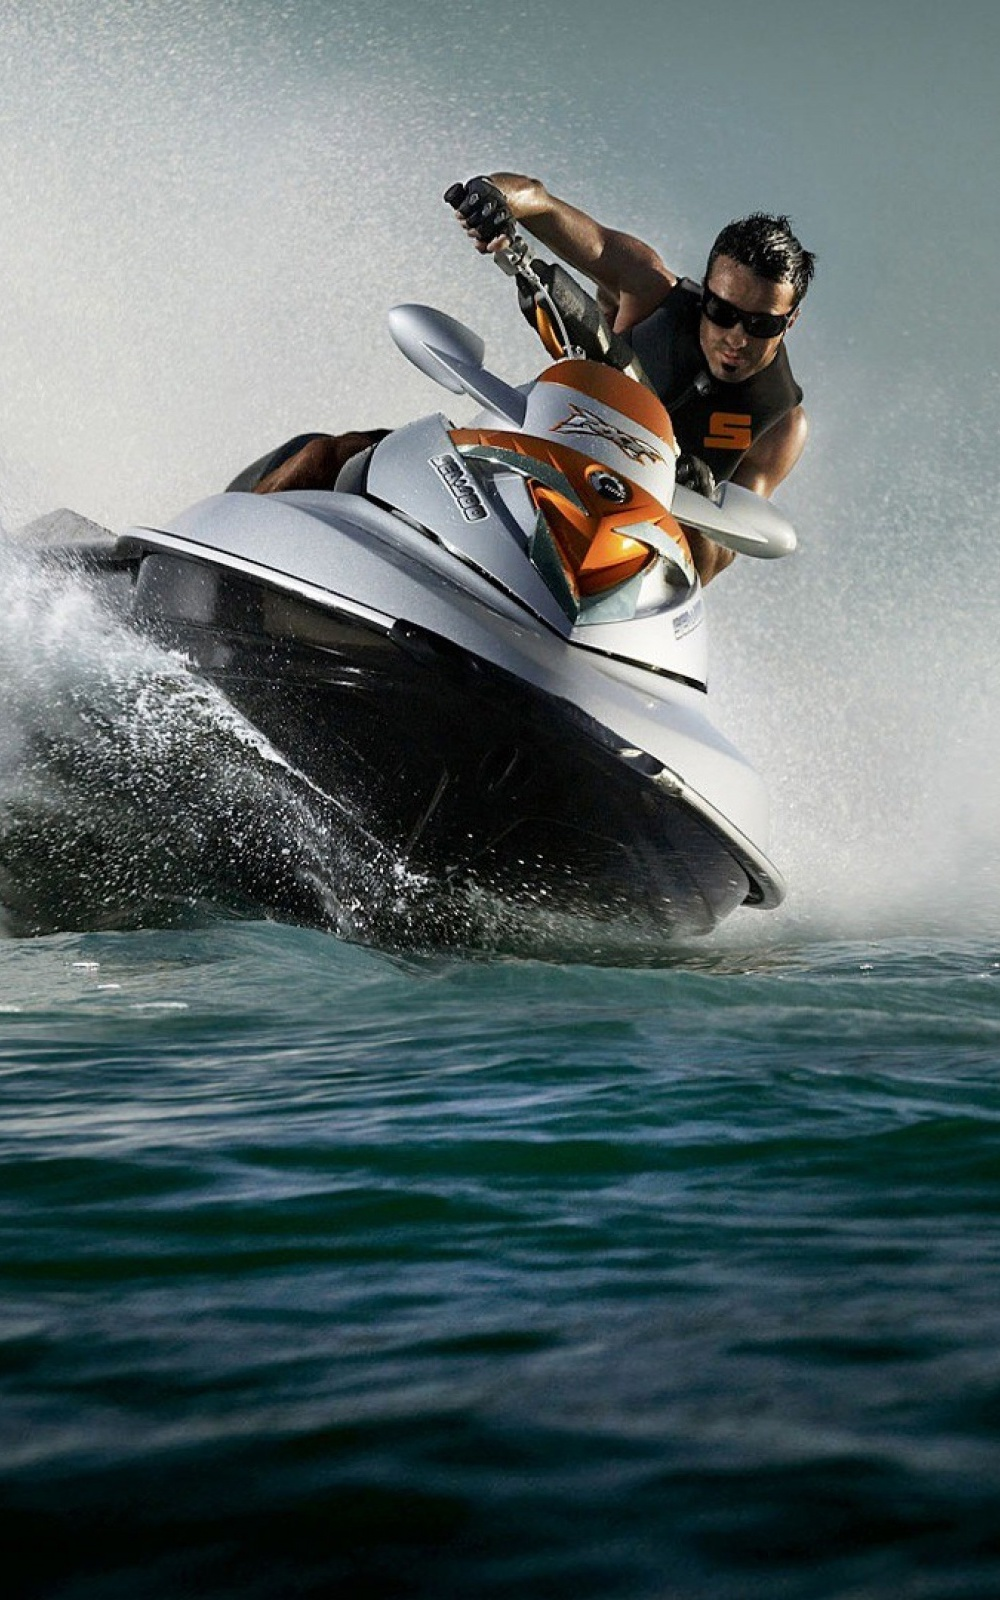 water sports mobile wallpaper - mobiles wall